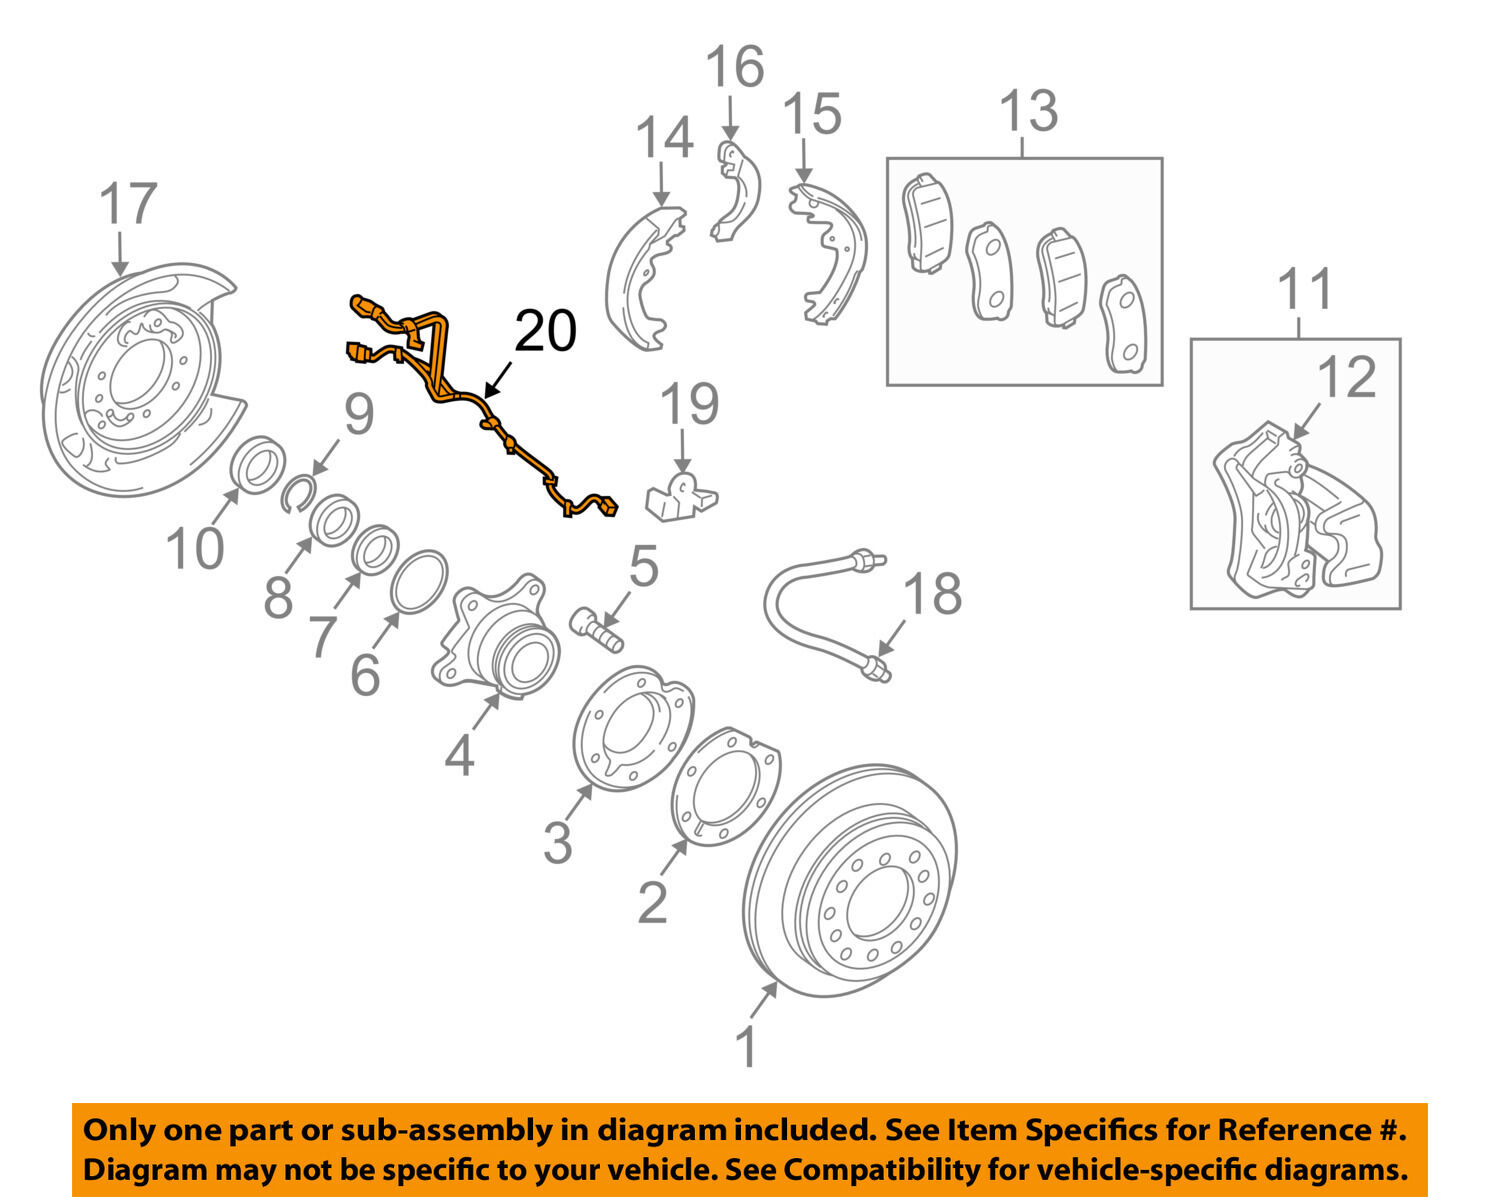 Toyota Oem Abs Anti Lock Brakes Rear Sensor Wire 8951660300 2010 Prius Wiring Diagram 1 Of 2only 5 Available